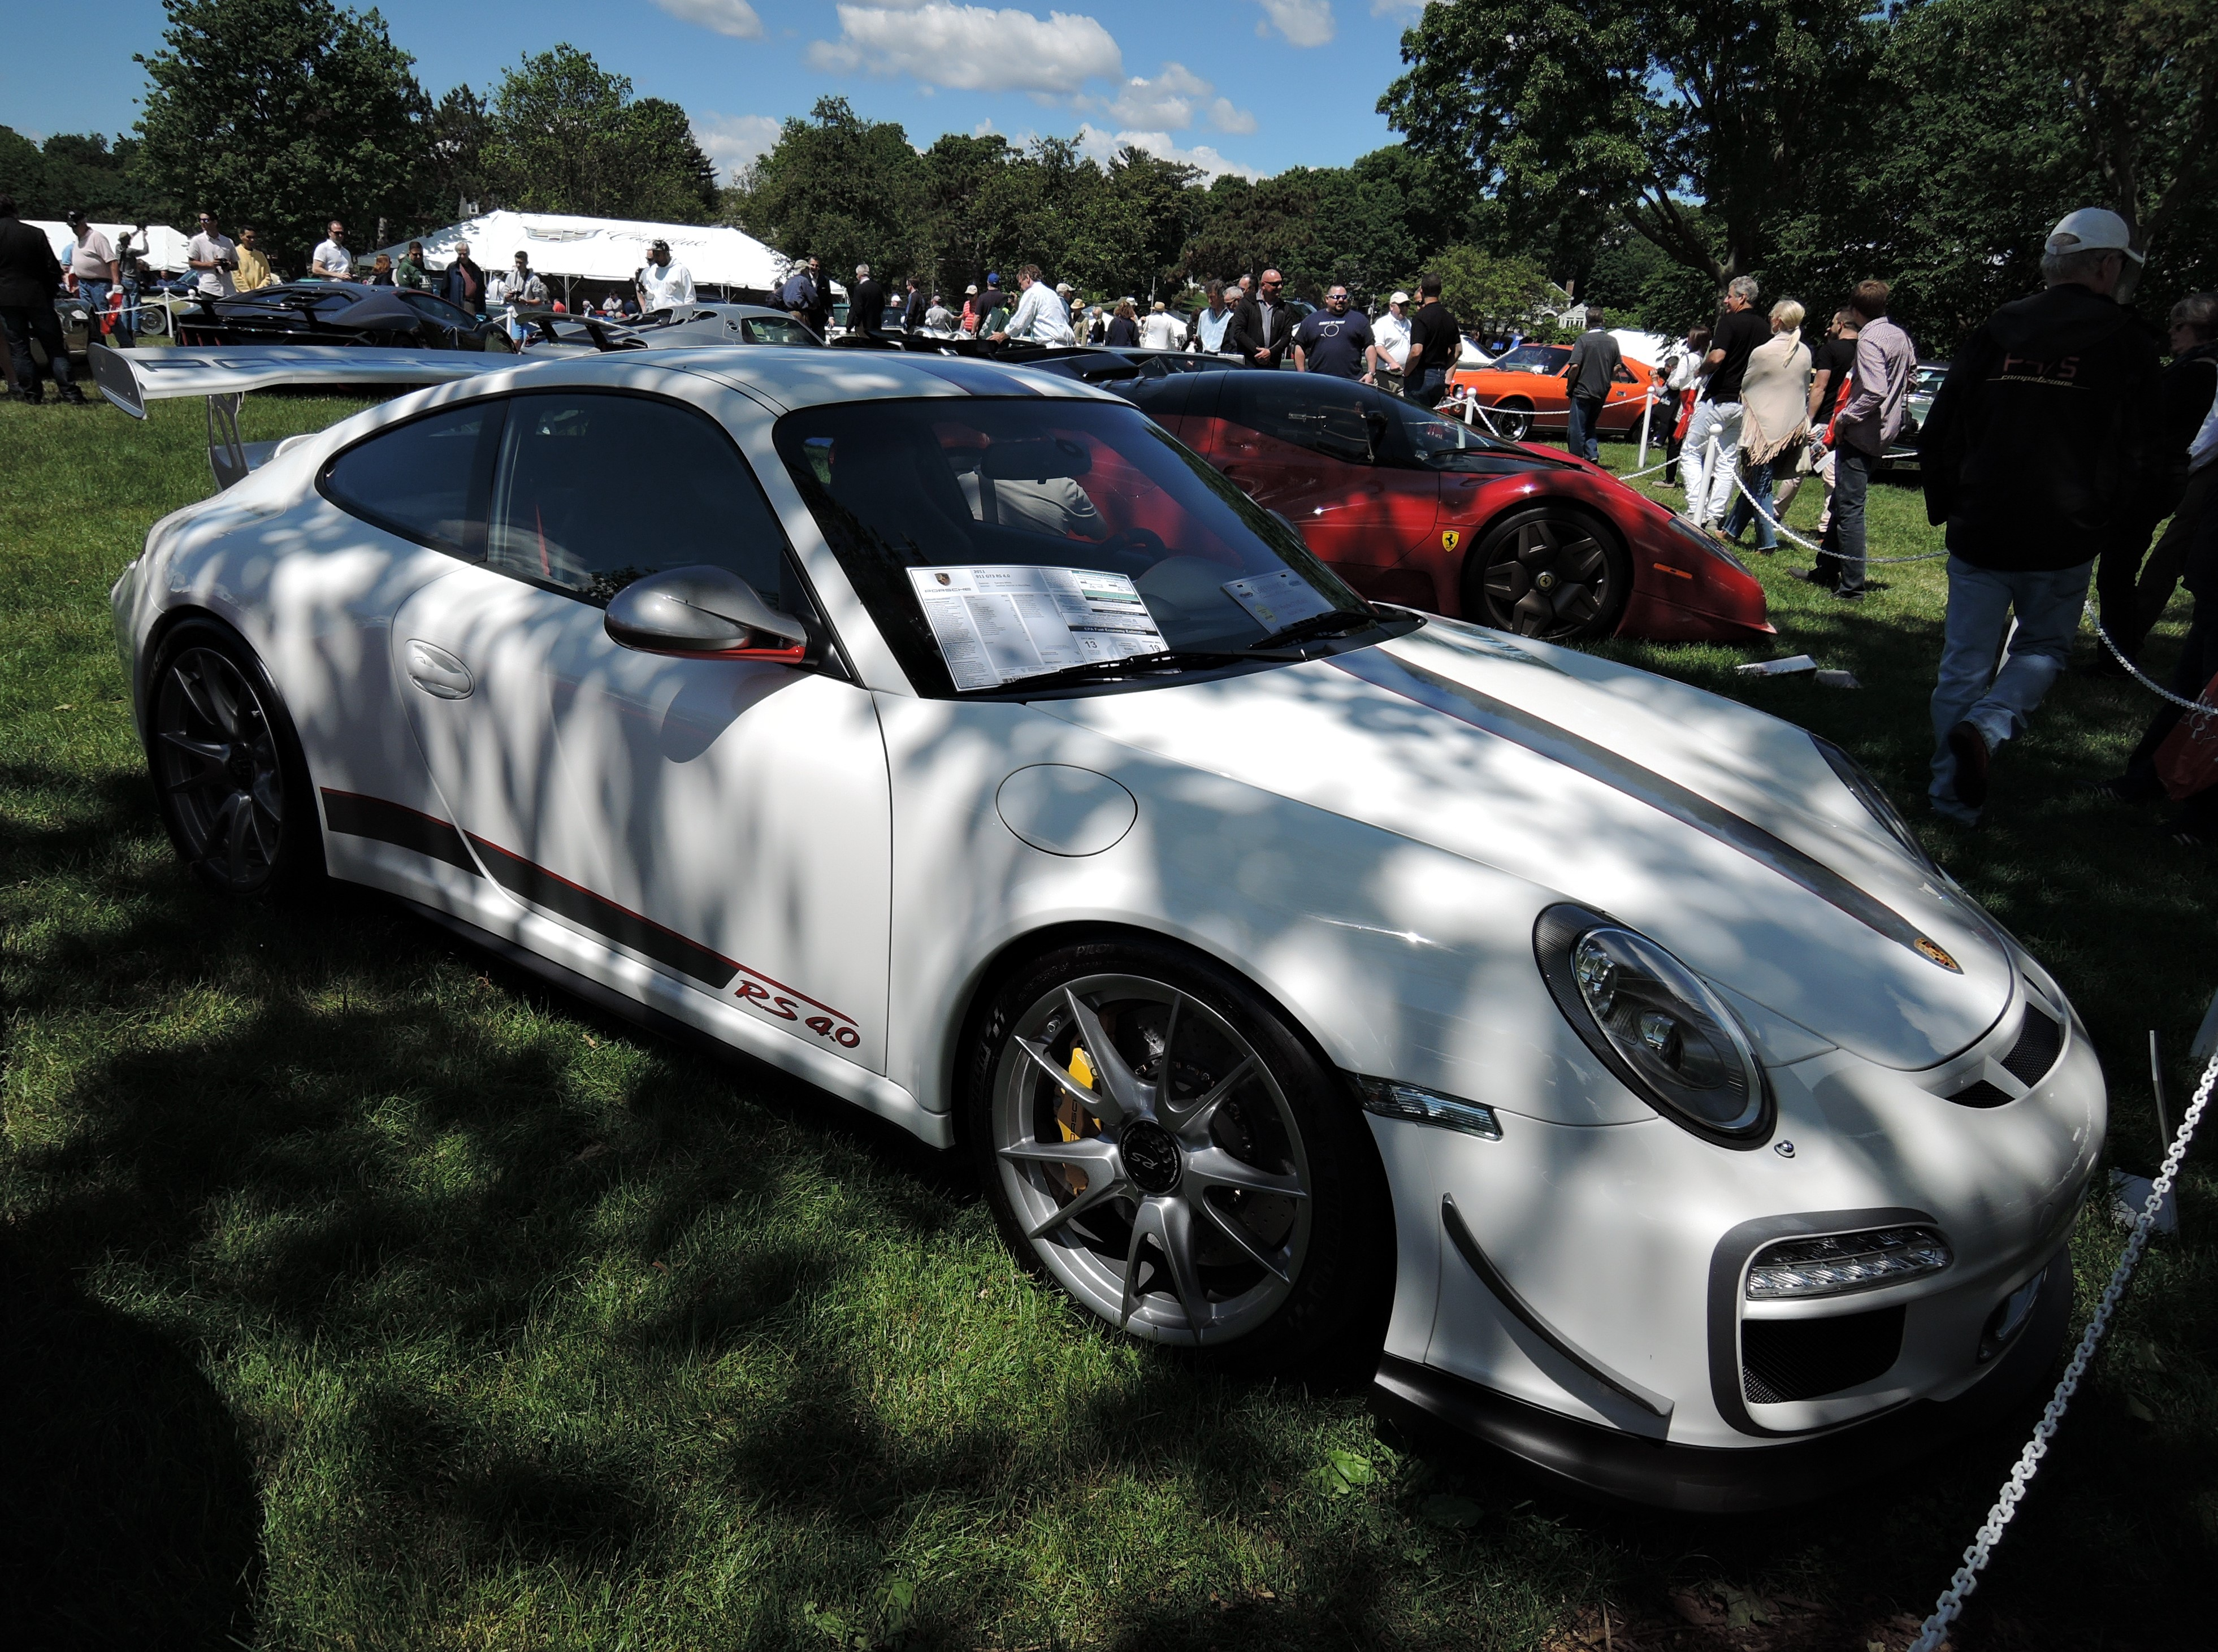 white 2011 Porsche GT3 RS 4.0 - Greenwich Concours d'Elegance 2017